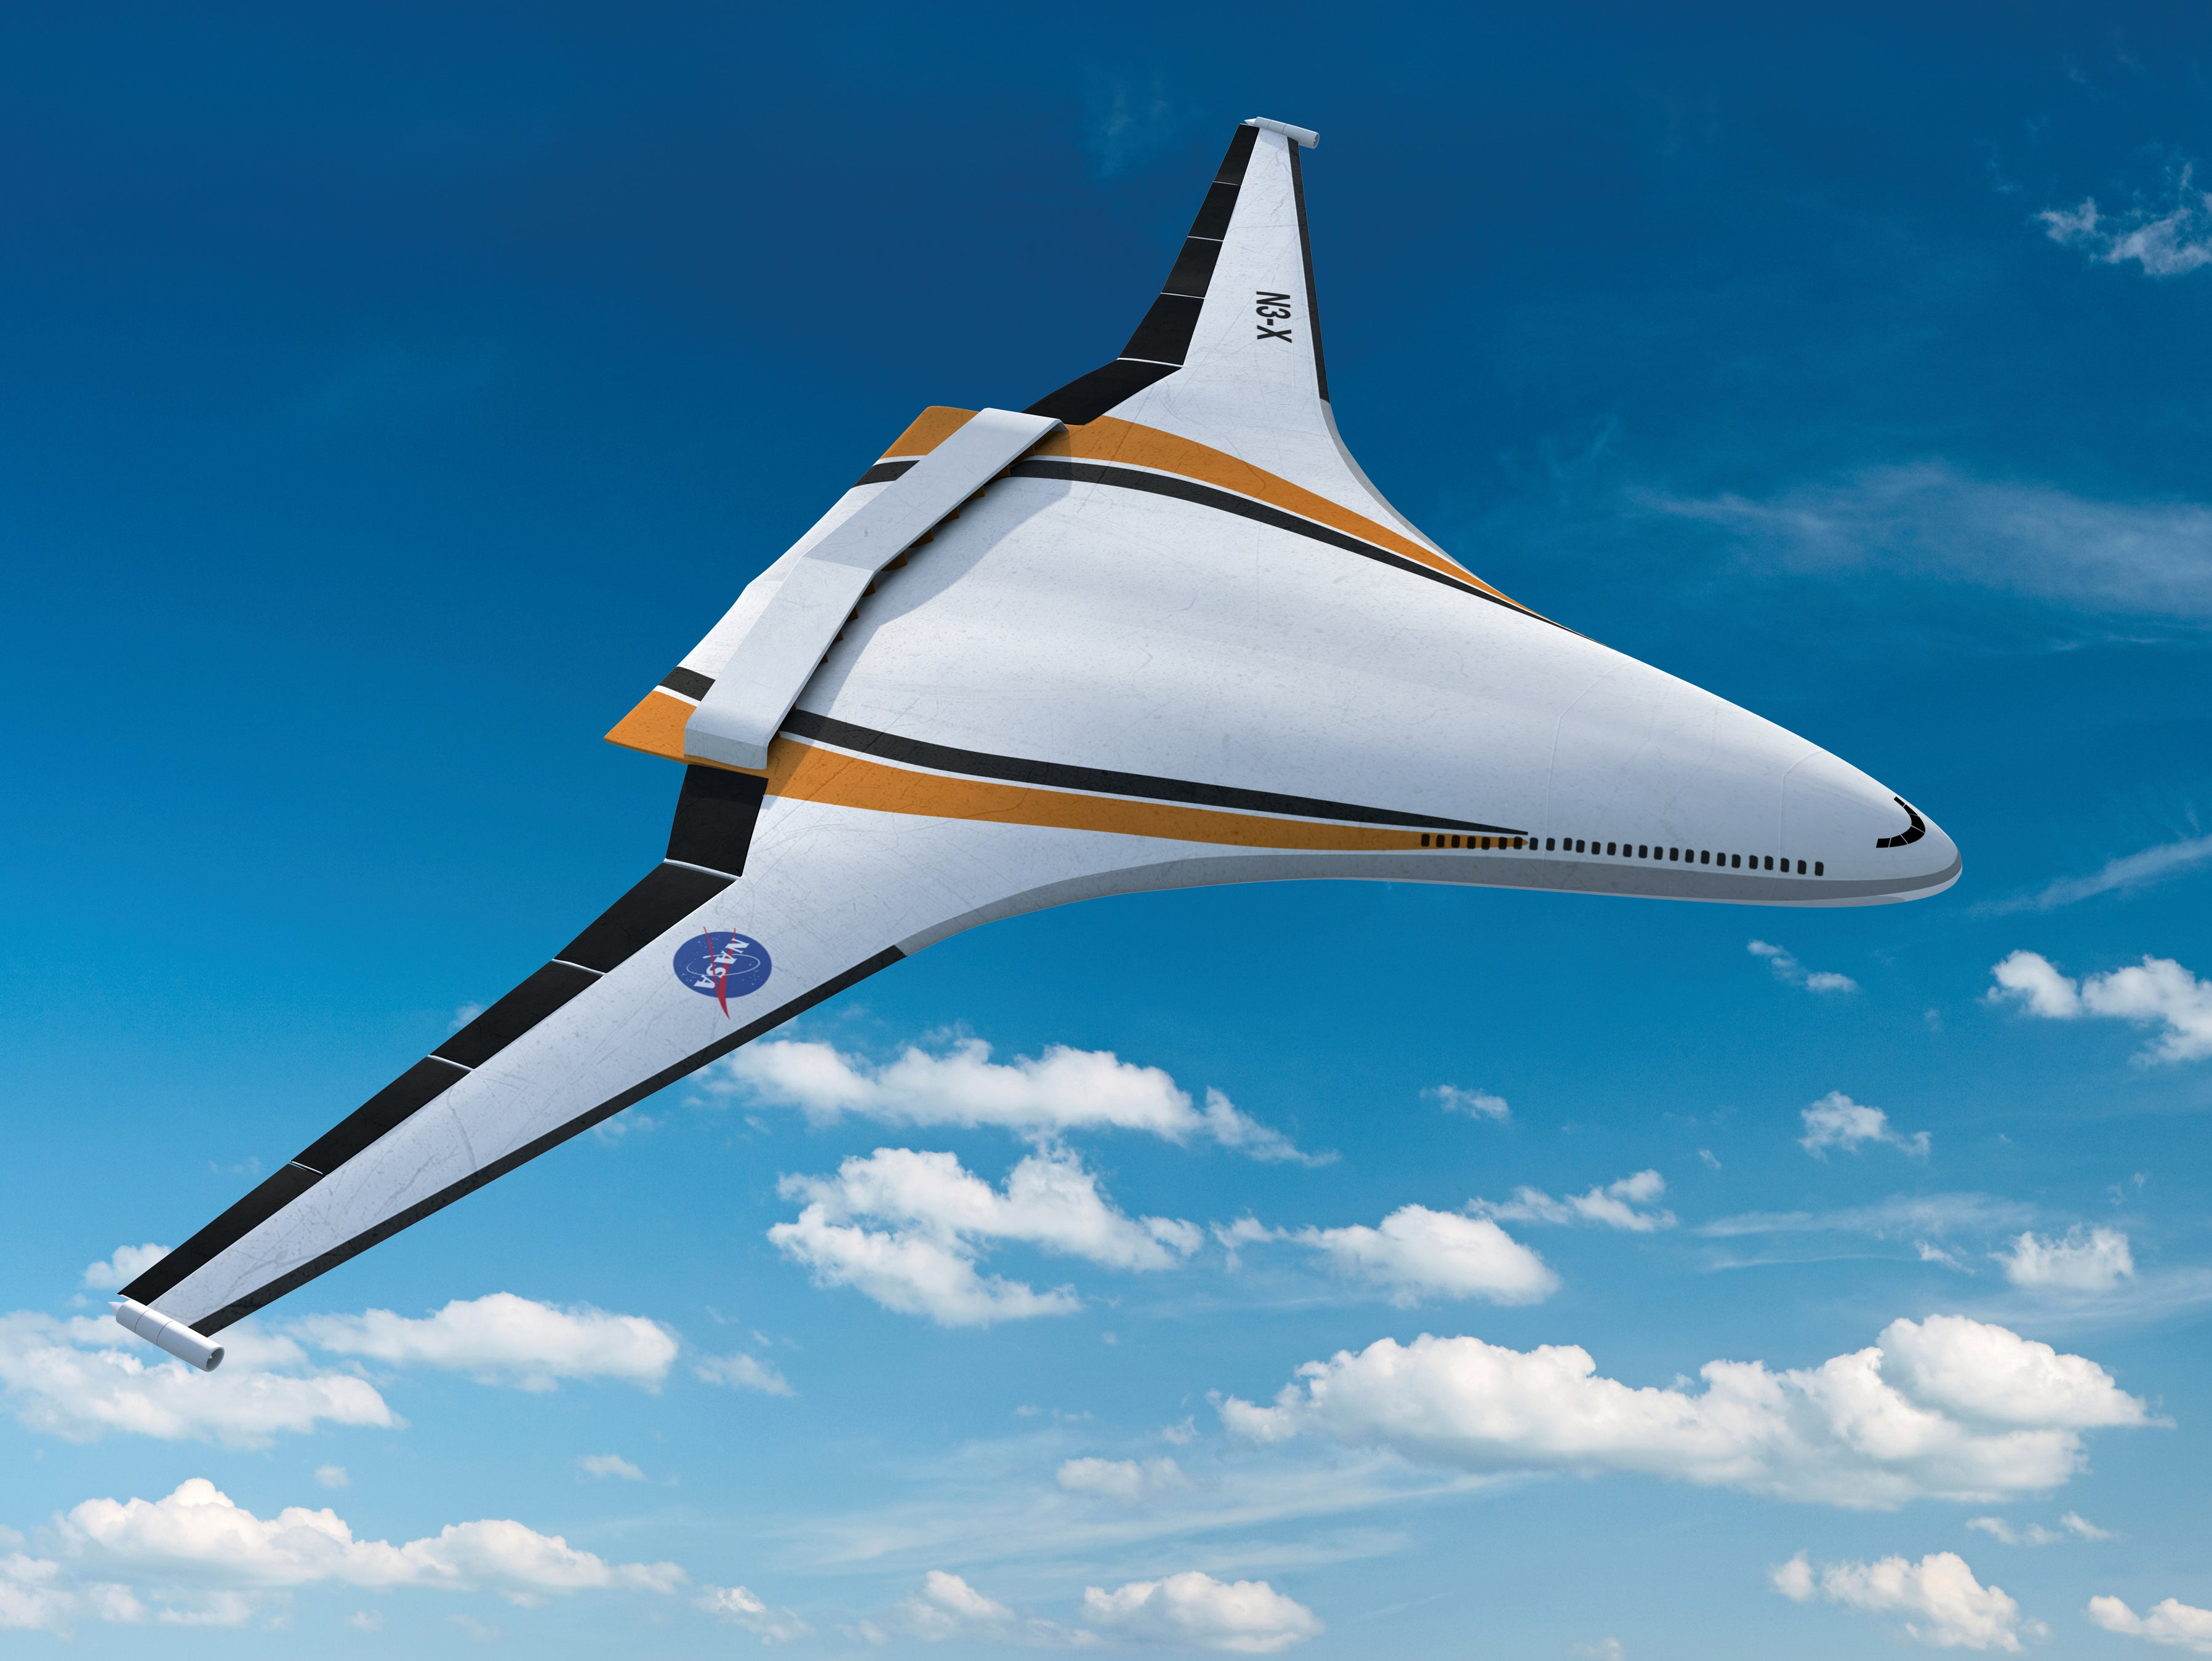 These Are NASA's Coolest And Strangest Aeroplanes Of The ...  These Are NASA&...